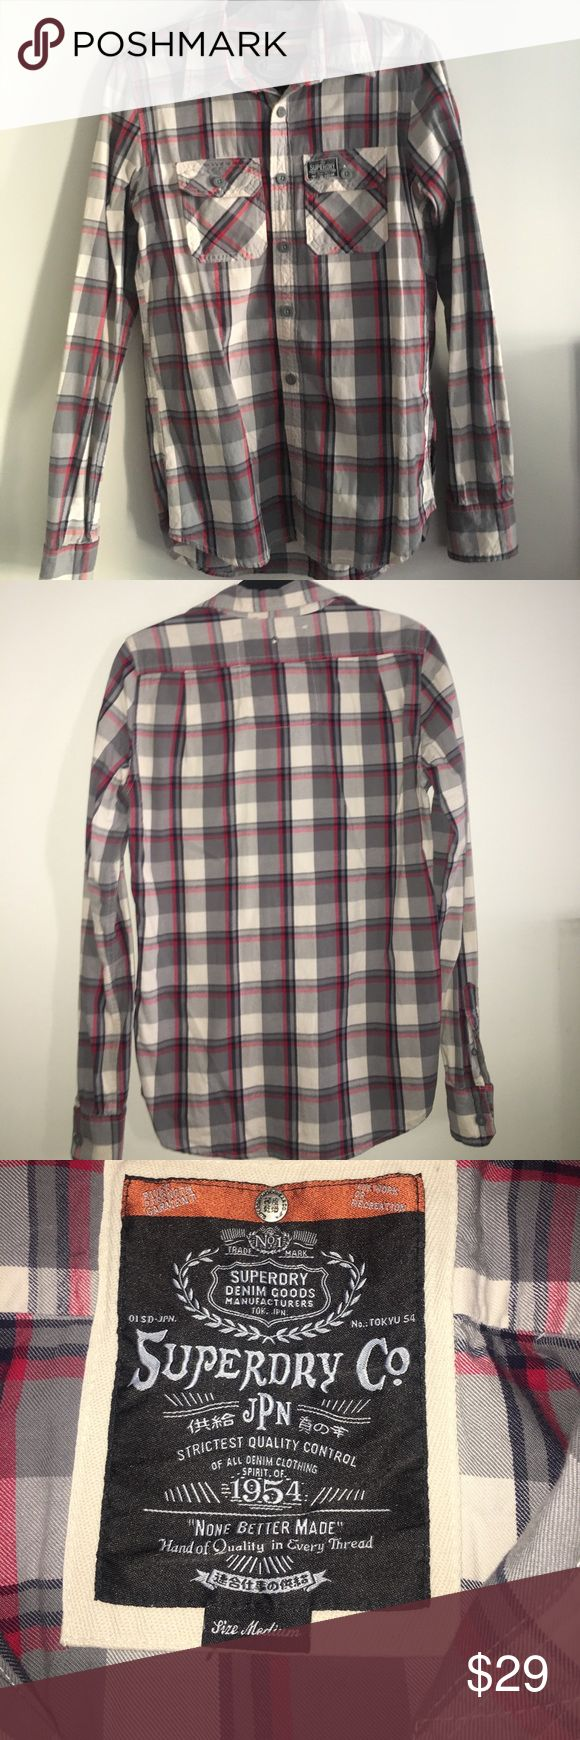 SUPERDRY Men's Plaid Button-down Shirt size M 100% Authentic SUPERDRY Co Men's Plaid Shirt. Size Medium. Never worn- perfect condition. Lumberjack style.   Grey, beige, blue, white, red shades. Superdry Shirts Casual Button Down Shirts